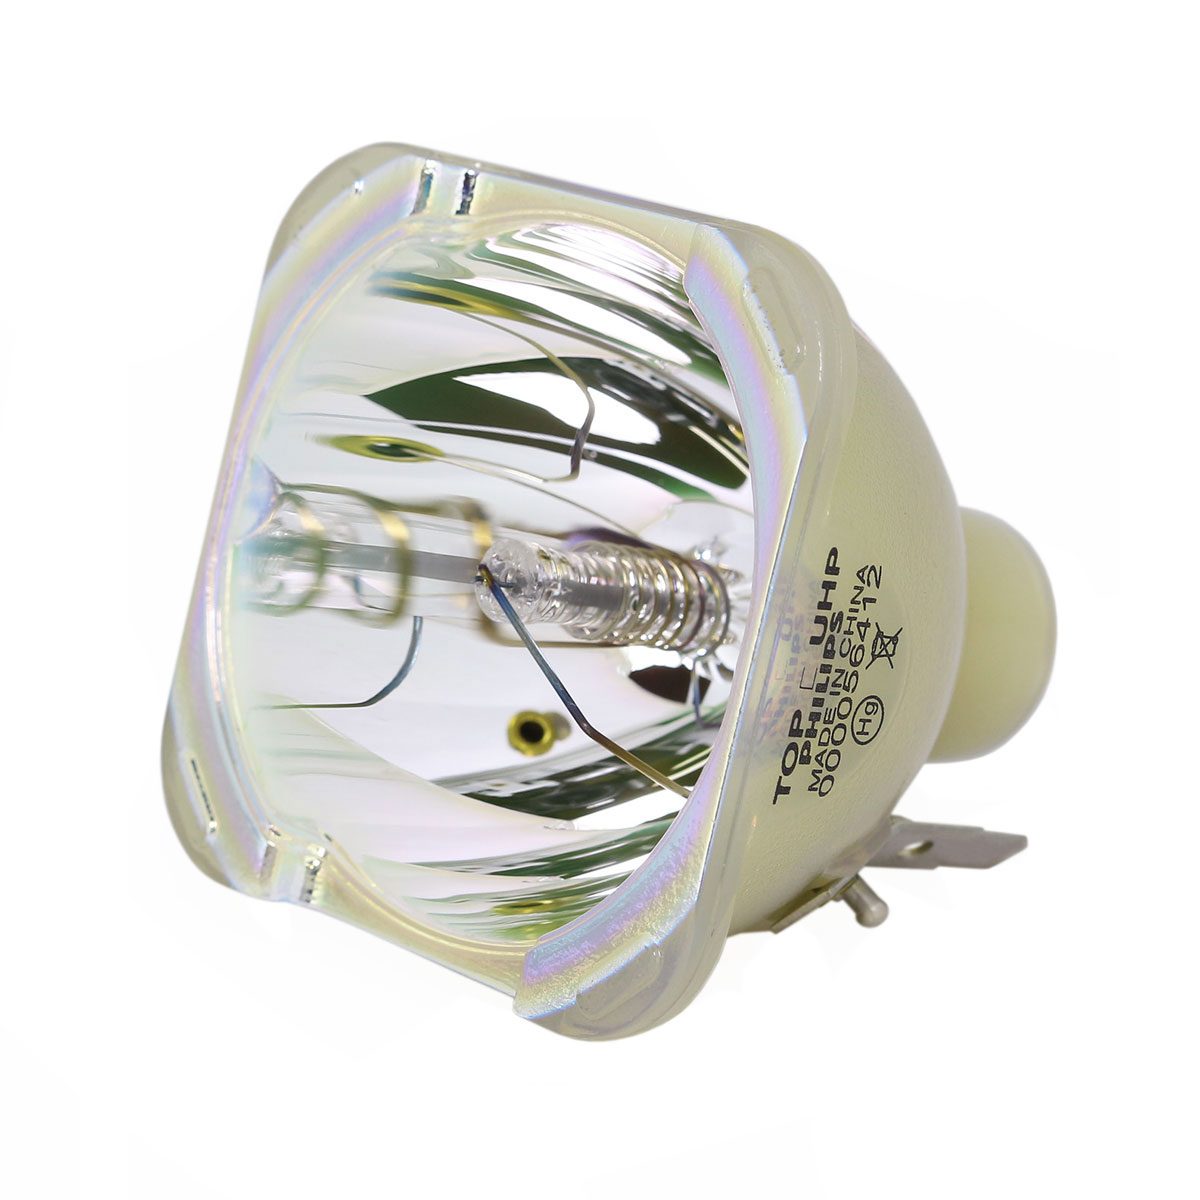 Lutema Economy for NEC NP38LP Projector Lamp (Bulb Only) - image 5 of 5